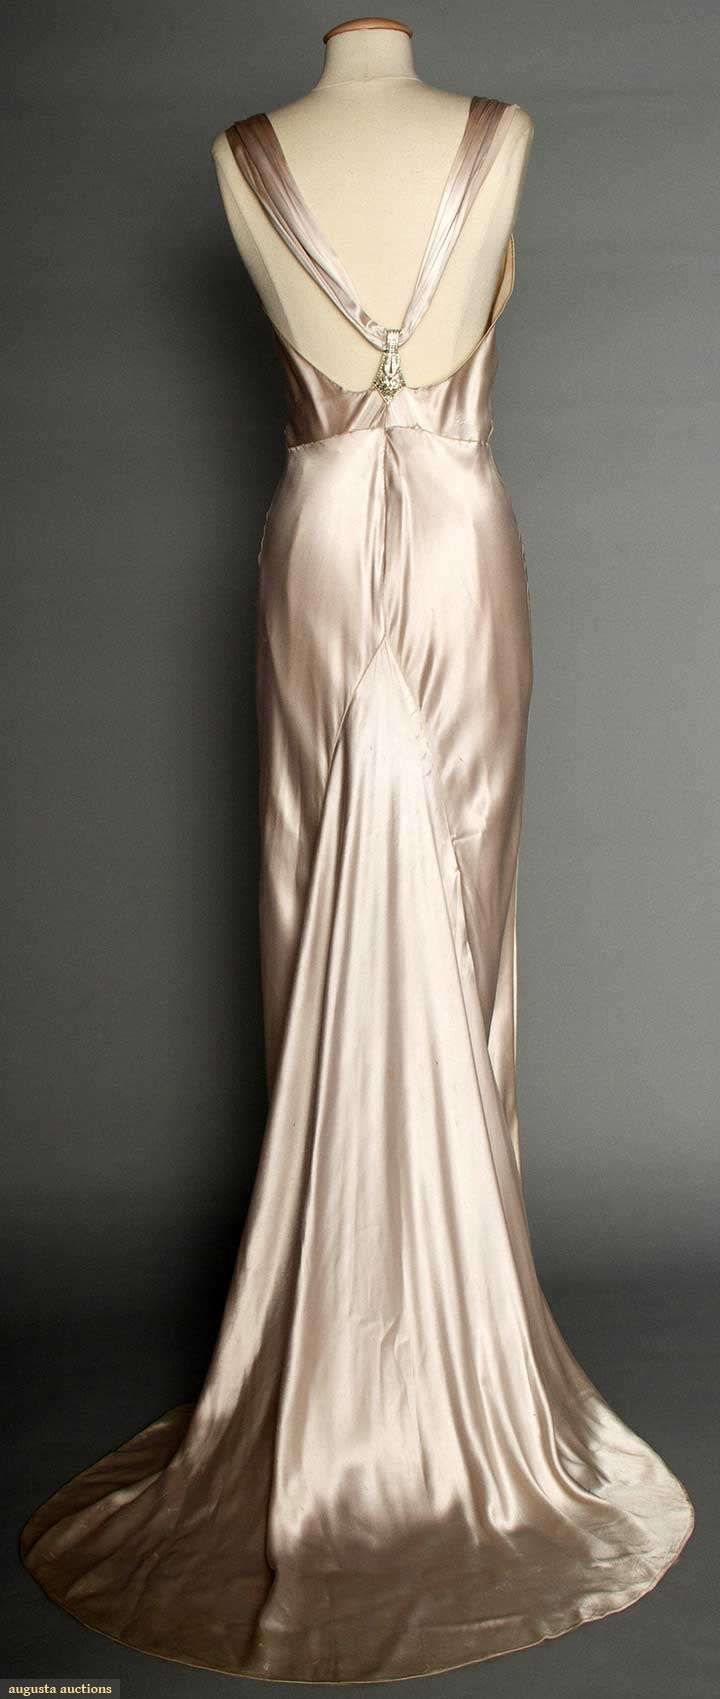 "SILVER SATIN EVENING GOWN, 1930s Pale lavender/silver silk charmeuse, bias-cut, sleeveless, cowl neckline, open back, jeweled Deco elements on shoulder straps & at CB, floating trained back panel, labeled ""NRA Code, Made Under Dress Code Authority PHB038577""  